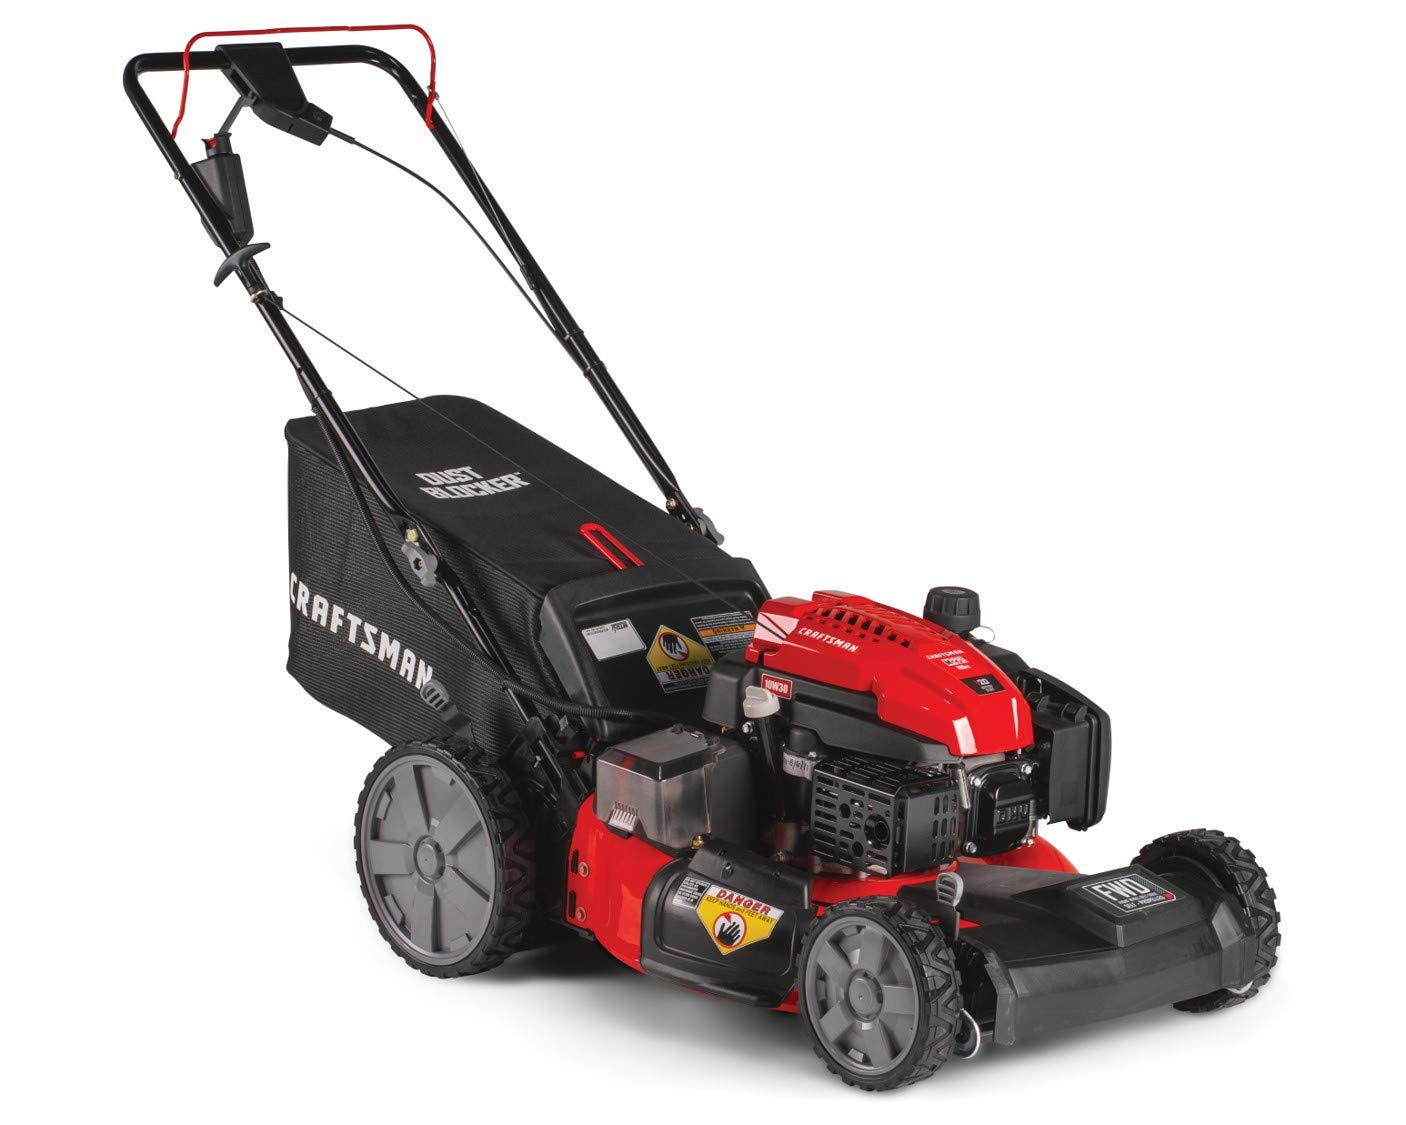 Craftsman M275 159cc 21-Inch 3-in-1 High-Wheeled Self-Propelled FWD Gas Powered Lawn Mower, with Bagger, Red 2 POWERFUL 159CC OHV GAS ENGINE: Powerful gas engine with 21-inch cutting deck to trim grass in one quick pass. 3-IN-1 CAPABILITIES: Unit has side discharge, rear discharge, and mulching capabilities. FRONT WHEEL DRIVE AND SELF-PROPELLED: Move around your yard with less effort at the propulsion speed of your choice.